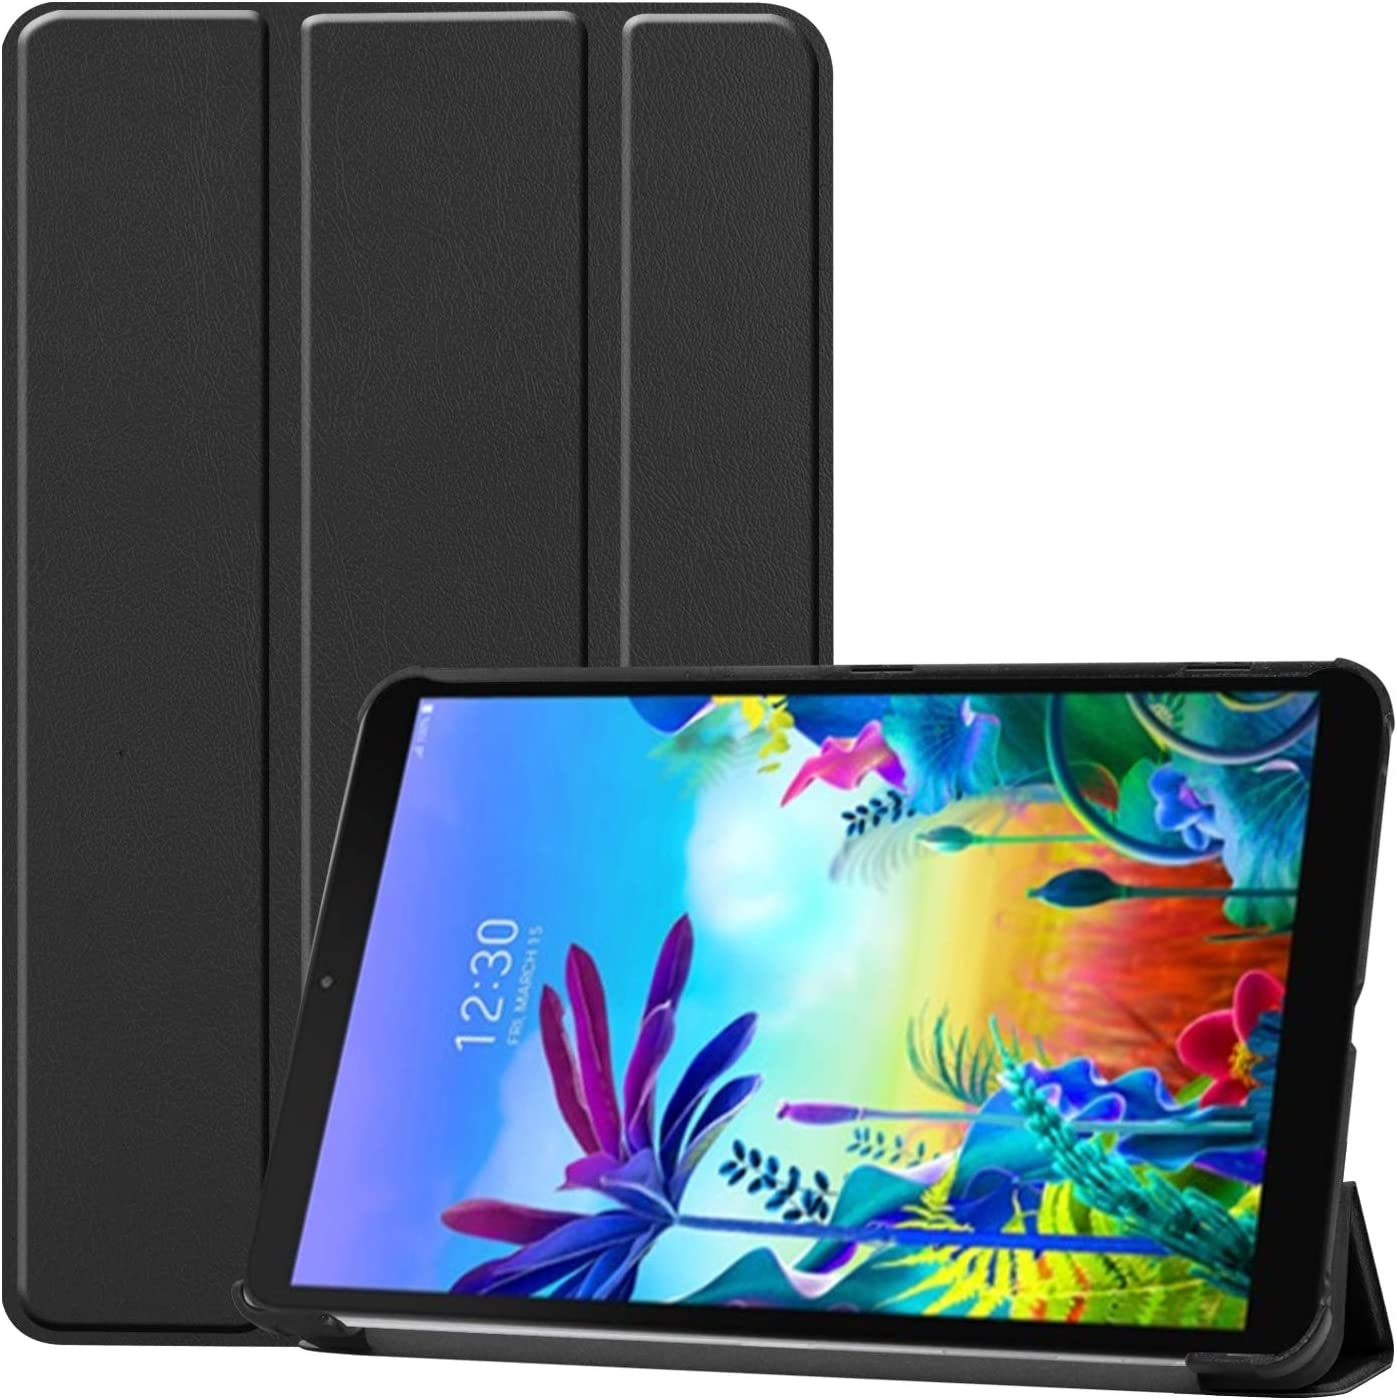 Gylint LG G Pad 5 10.1 Case, Smart Case Trifold Stand Slim Lightweight Case Cover for LG G Pad 5 10.1 Inches Tablet 2019 Release, Model:LM-T600L, T600L Black